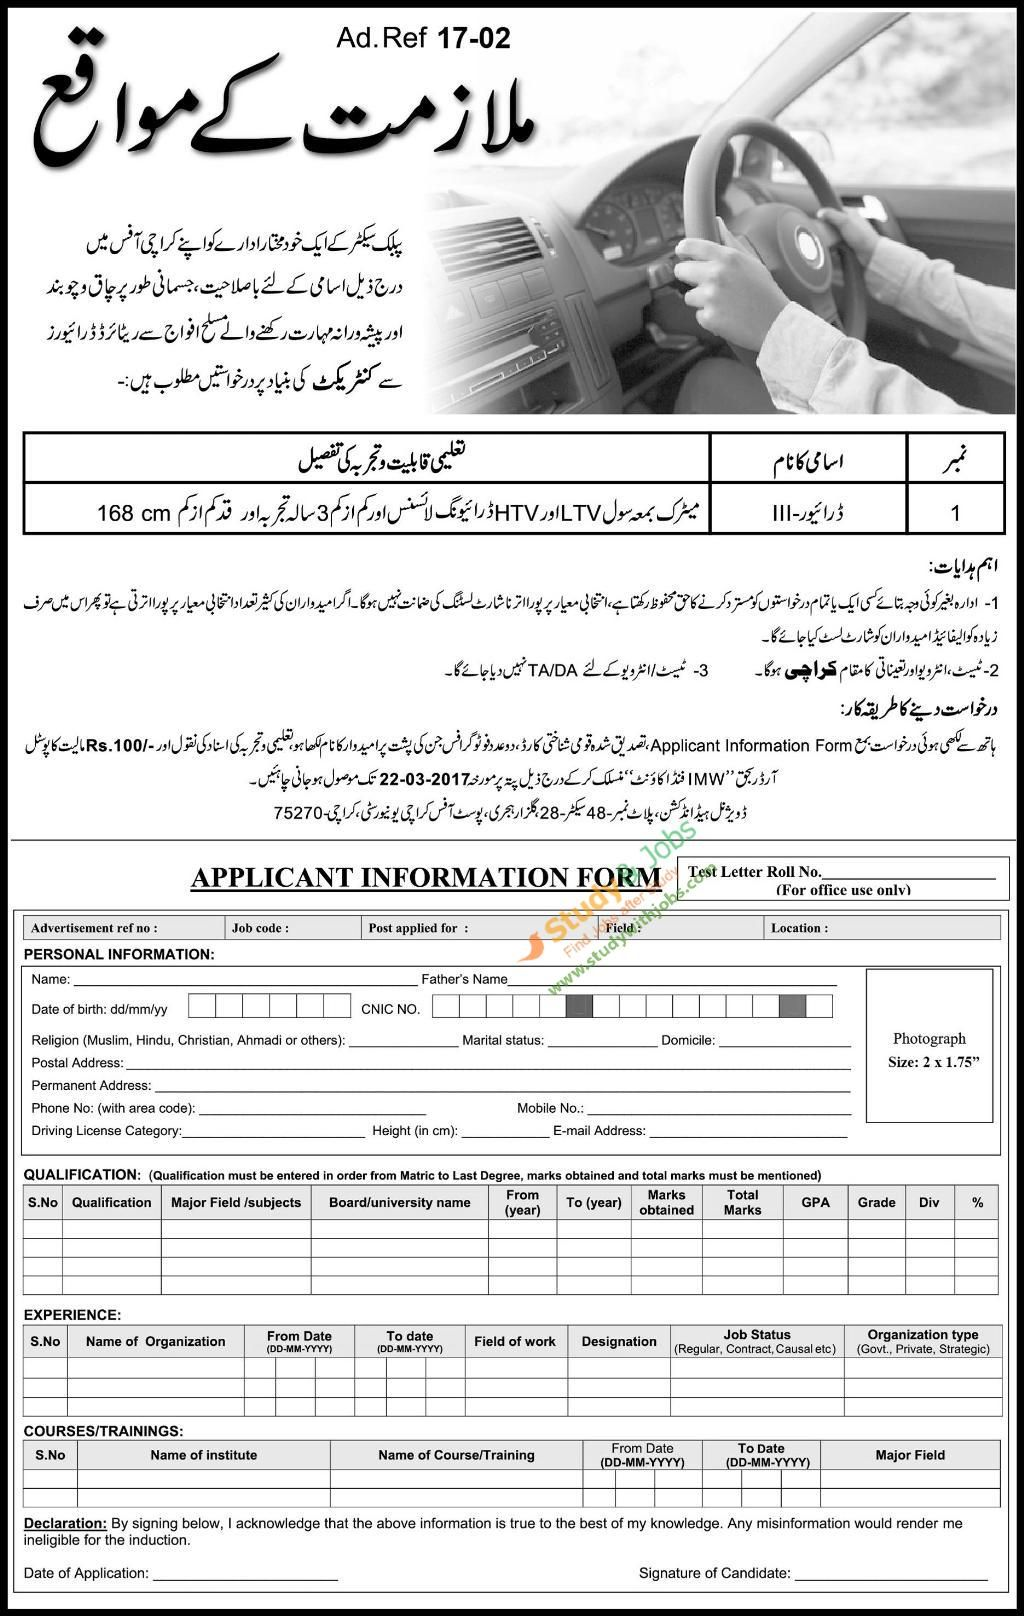 Public Sector Organization Vacancies Online Application Form Th